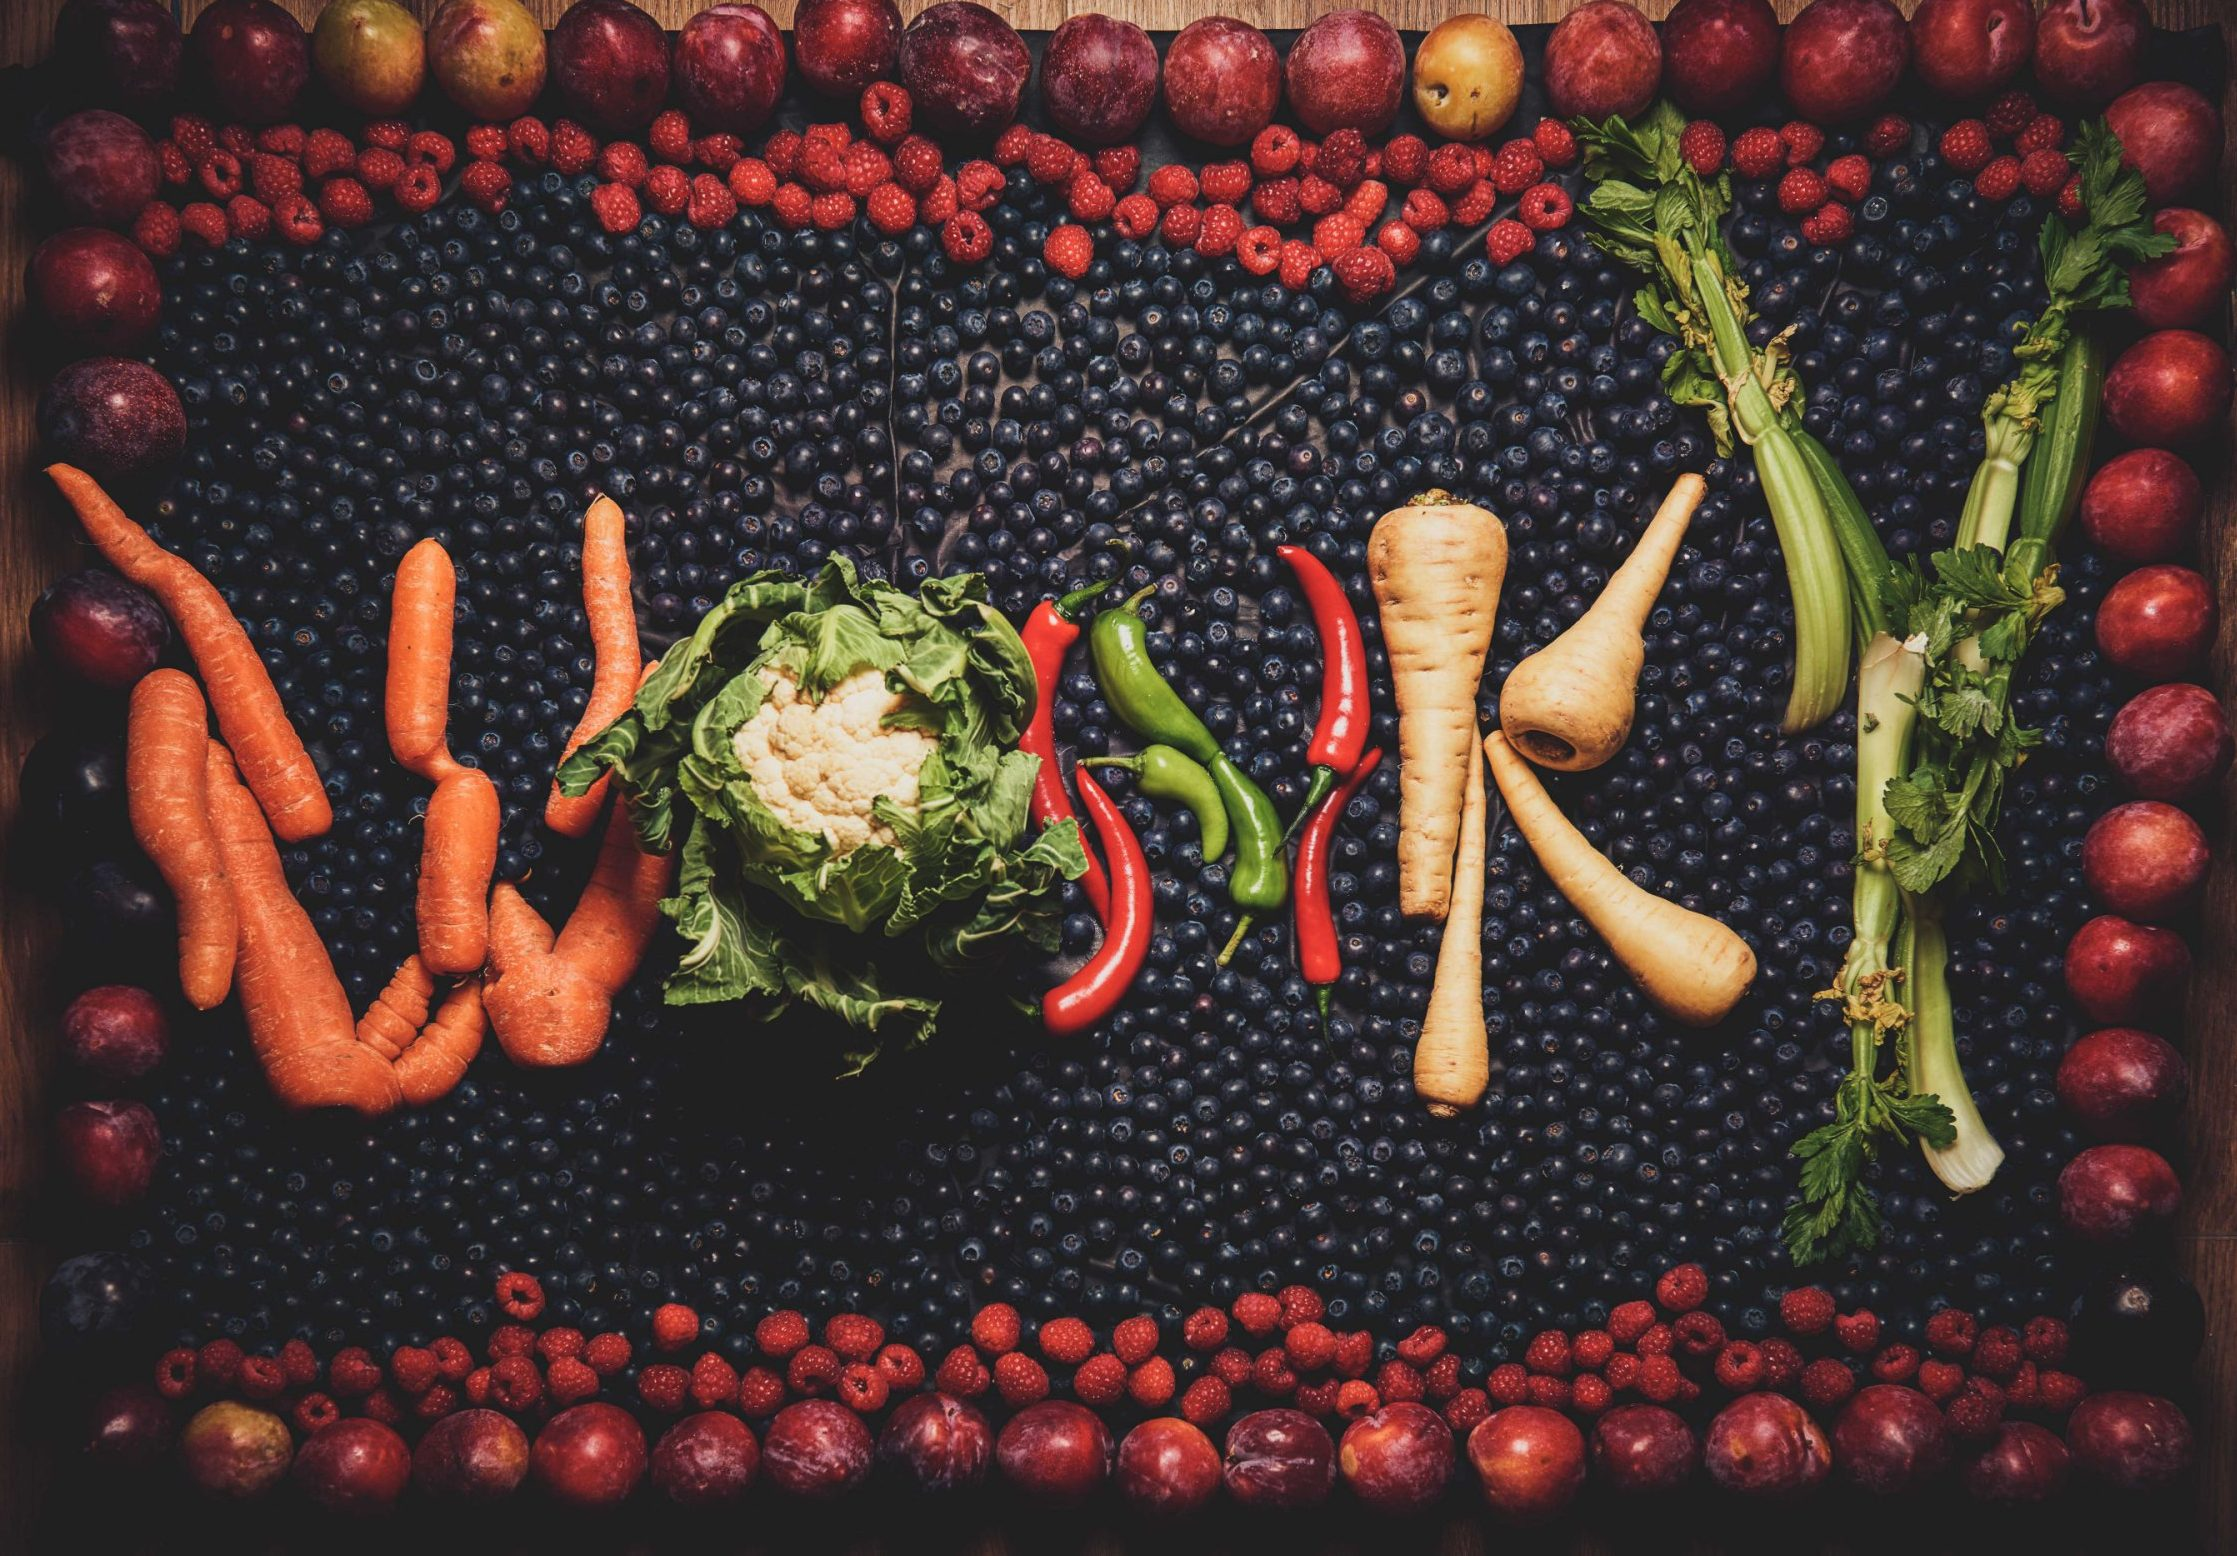 Mandatory Credit: Photo by Mikael Buck/REX/Shutterstock (9501418a) A sign made from wonky fruit and veg Morrisons to increase wonky fruit and veg offerings, UK - 03 Apr 2018 Morrisons is pledging to sell more wonky, over-sized, under-sized and blemished seasonal fruit and veg after listening to customers' continuing concerns about food waste. Wonky fruit and veg occurs for a number of reasons such as poor weather conditions. Products will have been selected from farmers' crops because they are misshapen, have skin blemishes or growth cracks, or are much smaller or larger than average.